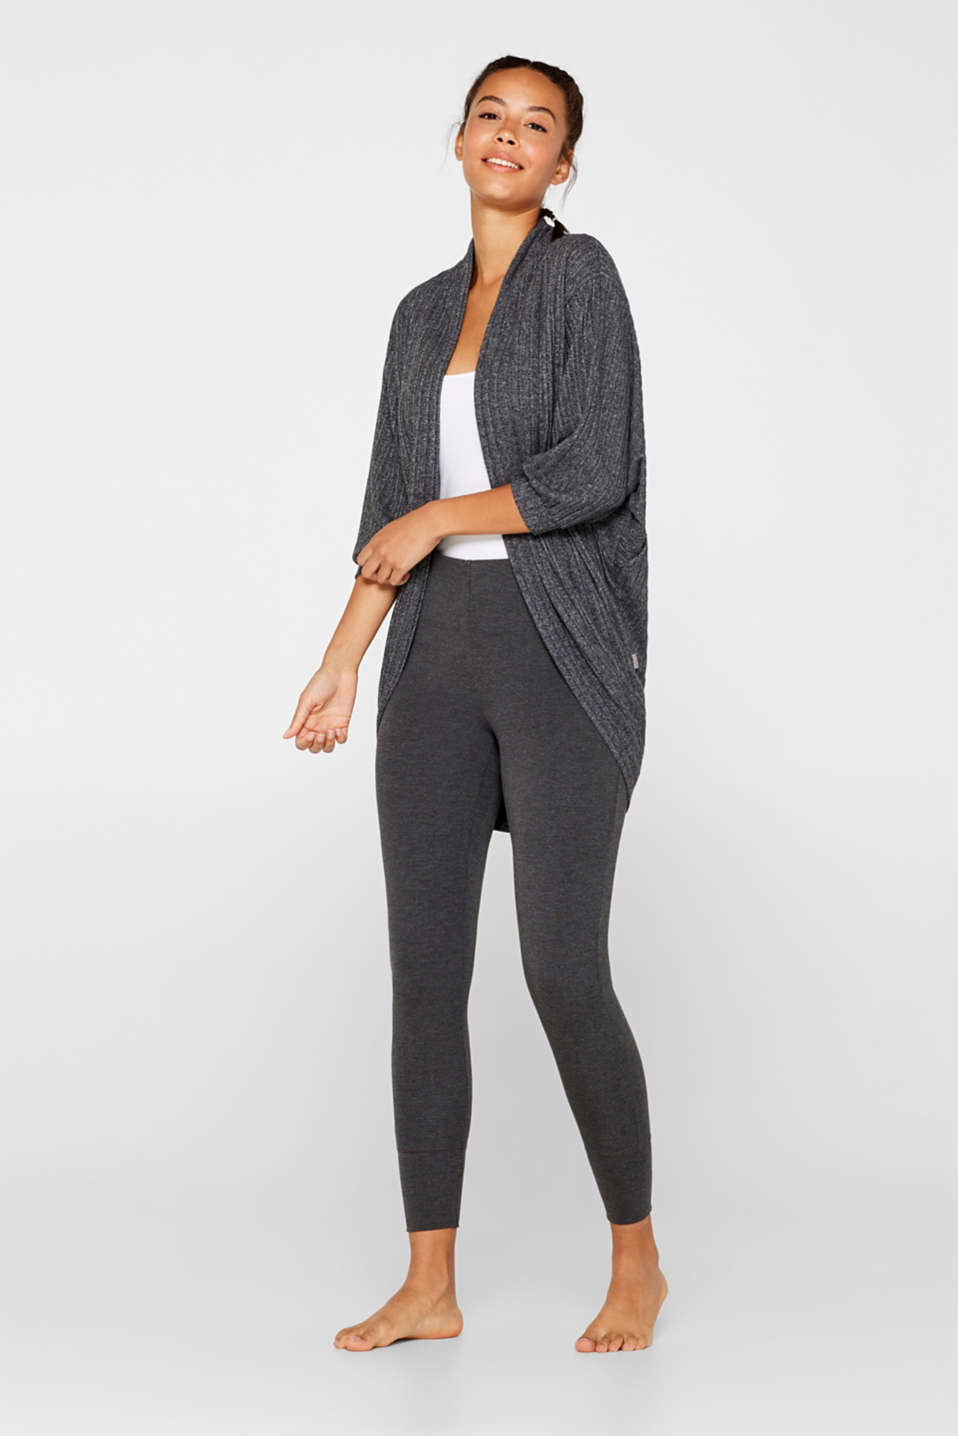 Ribbed stretch jersey cardigan, recycled, ANTHRACITE 2, detail image number 1